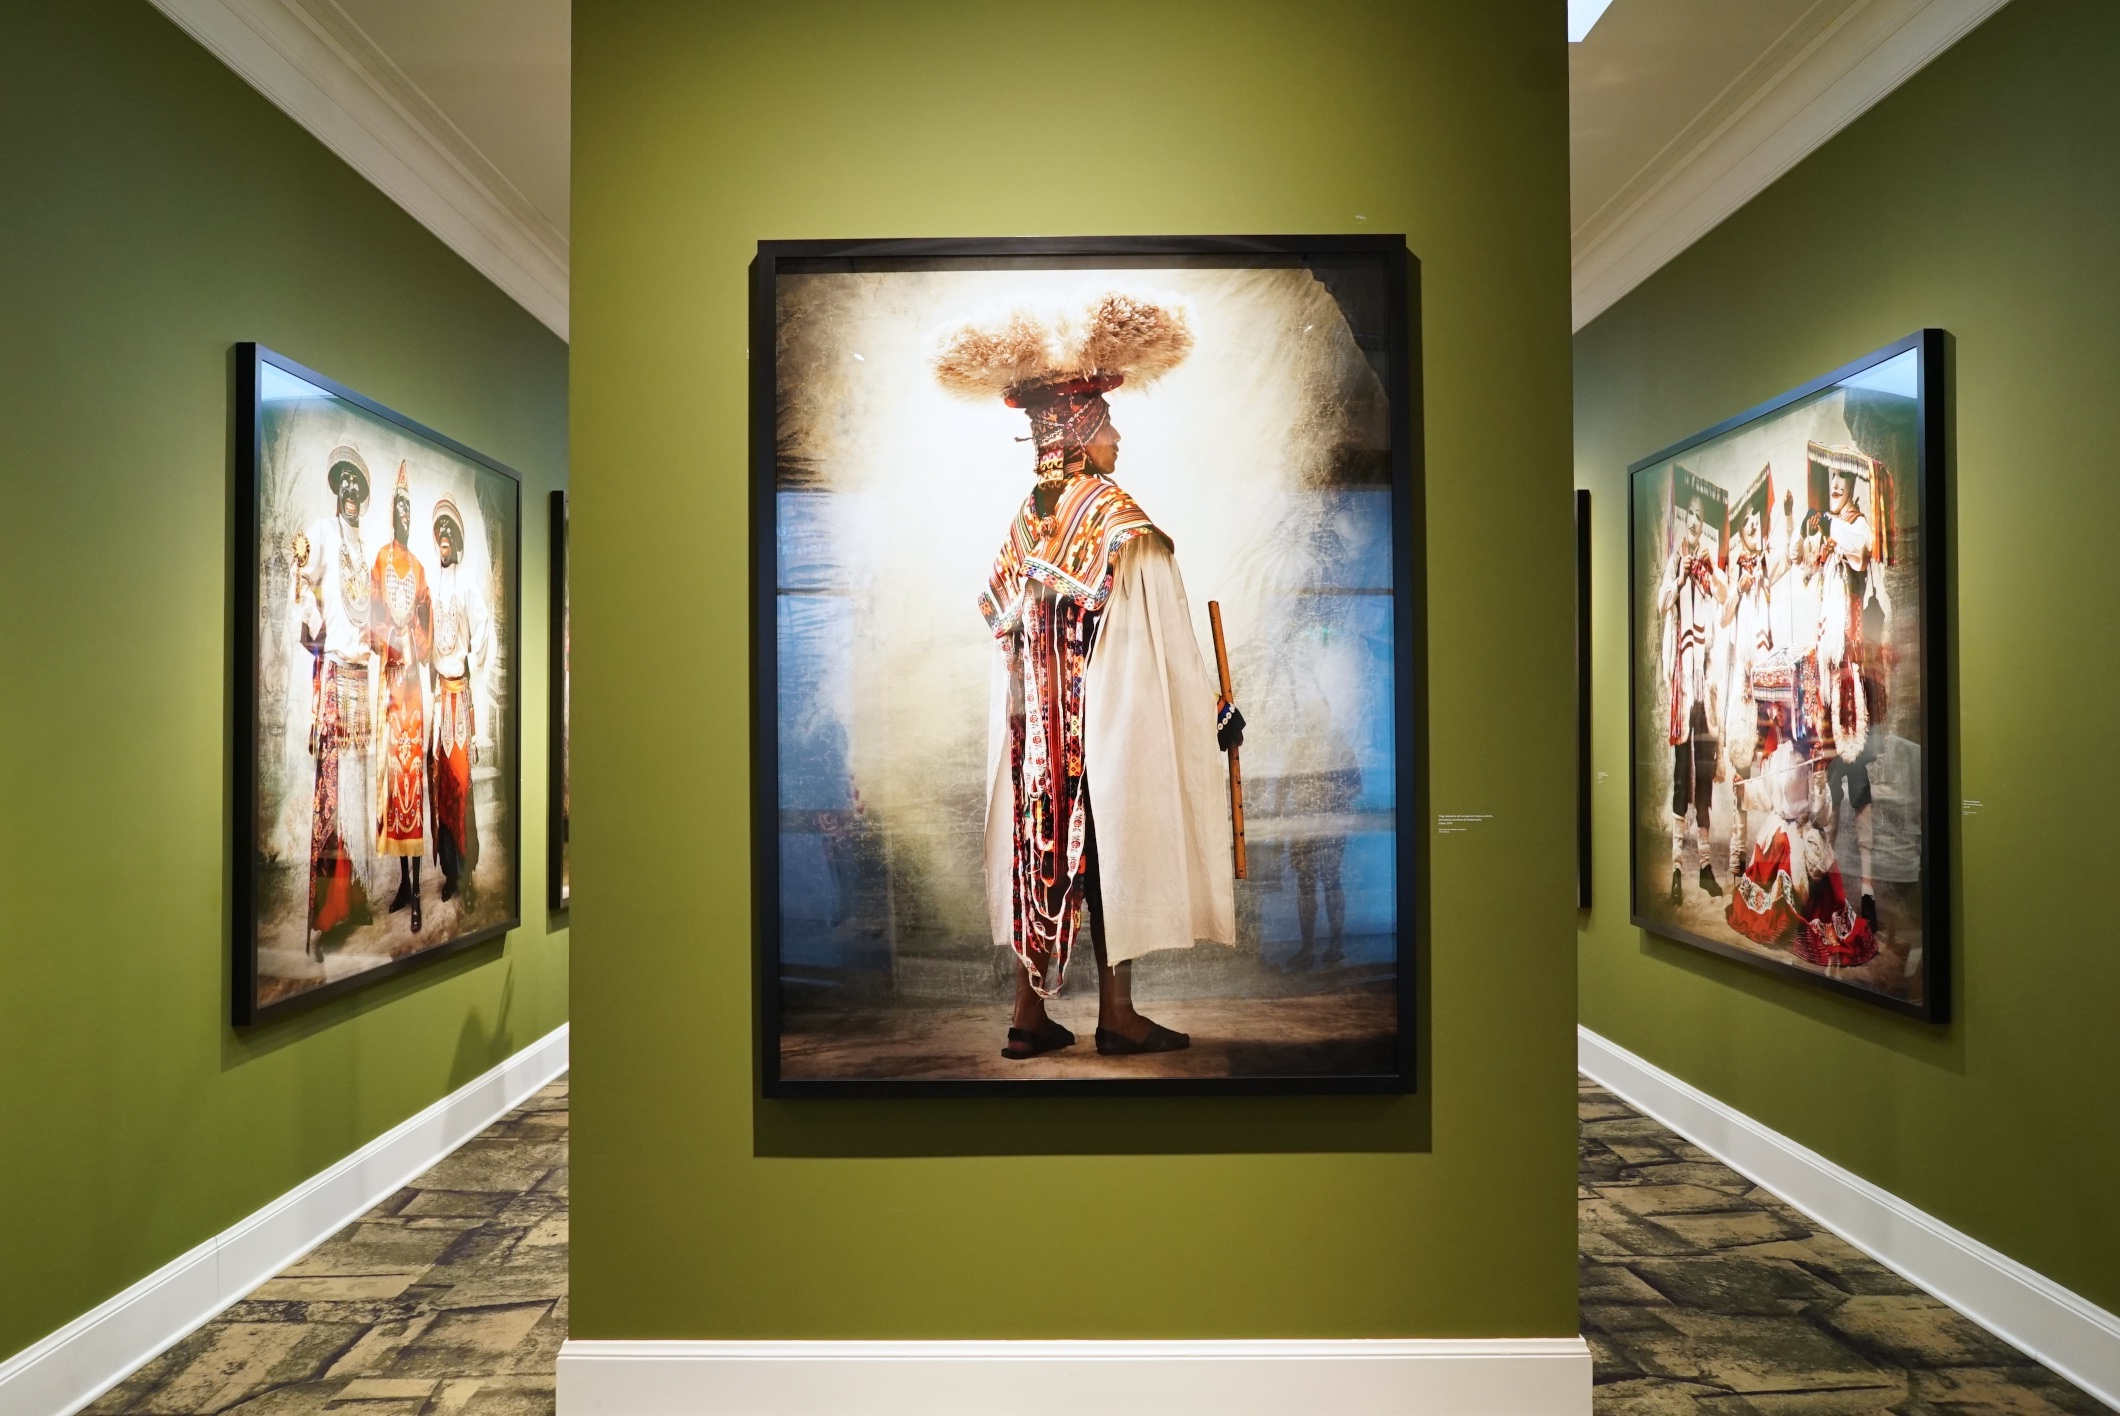 Be sure to check out the permanent exhibition at the  MATE  museum, including  Alta Moda , a series of photographic portraits of Peruvians local to the mountainous region of Cusco, wearing traditional festive attire.